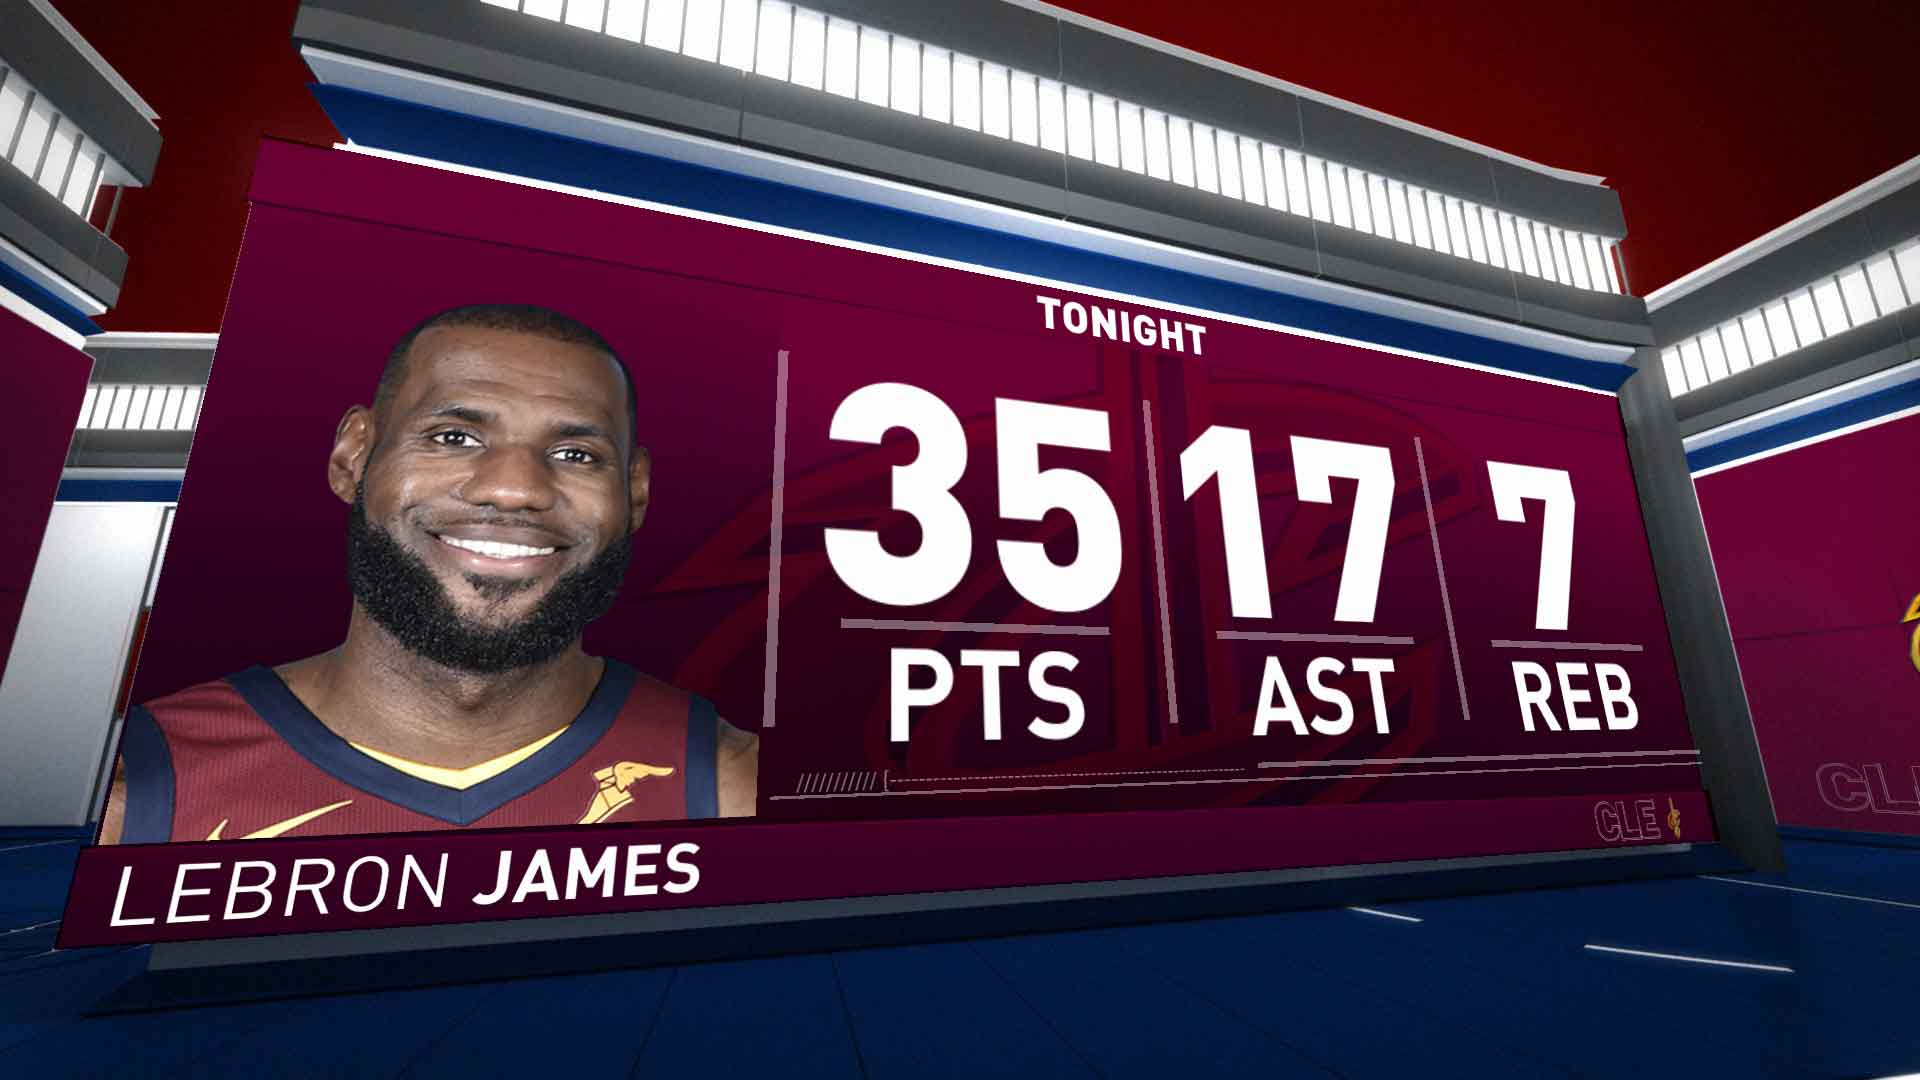 LeBron James Scores 35 in Win vs. Raptors | March 21, 2018